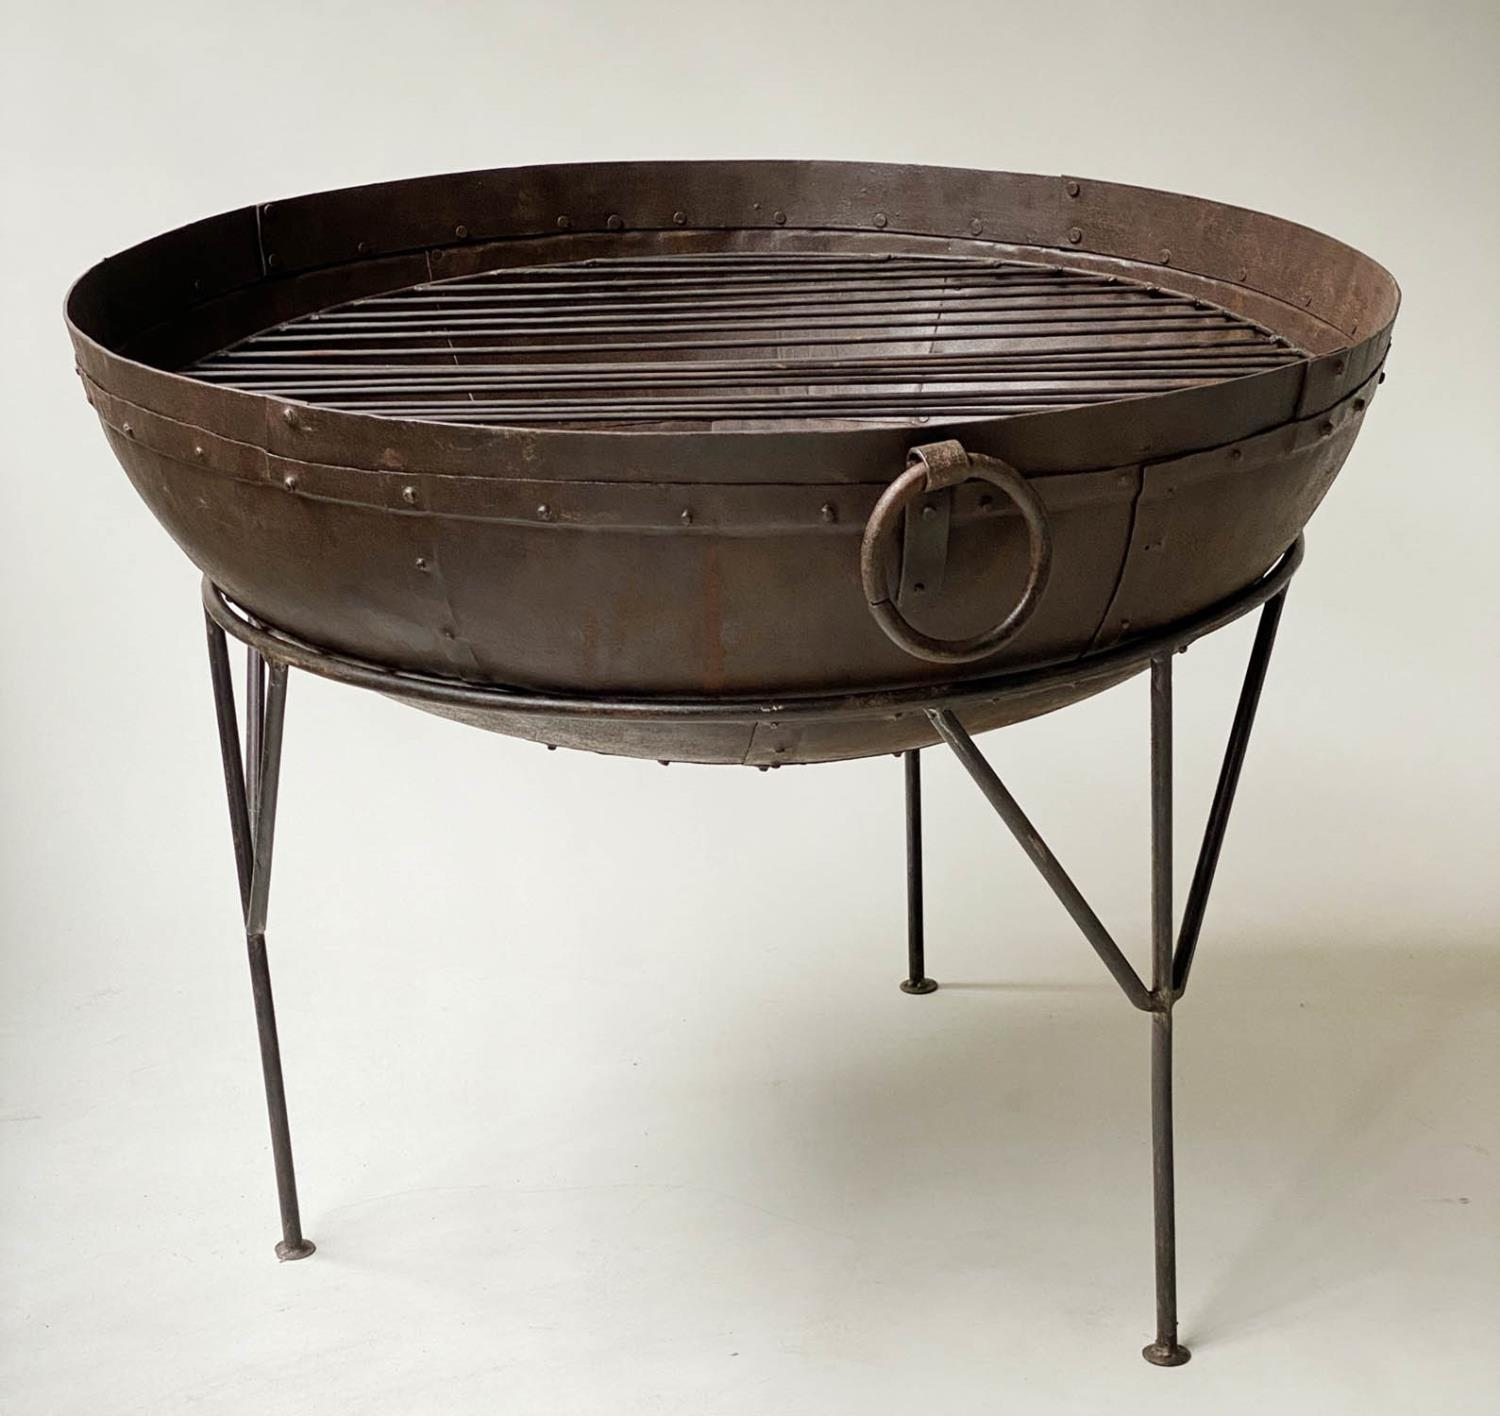 FIREPIT, riveted bowl form with grill and wrought iron stand, 84cm x 65cm H. - Image 3 of 5